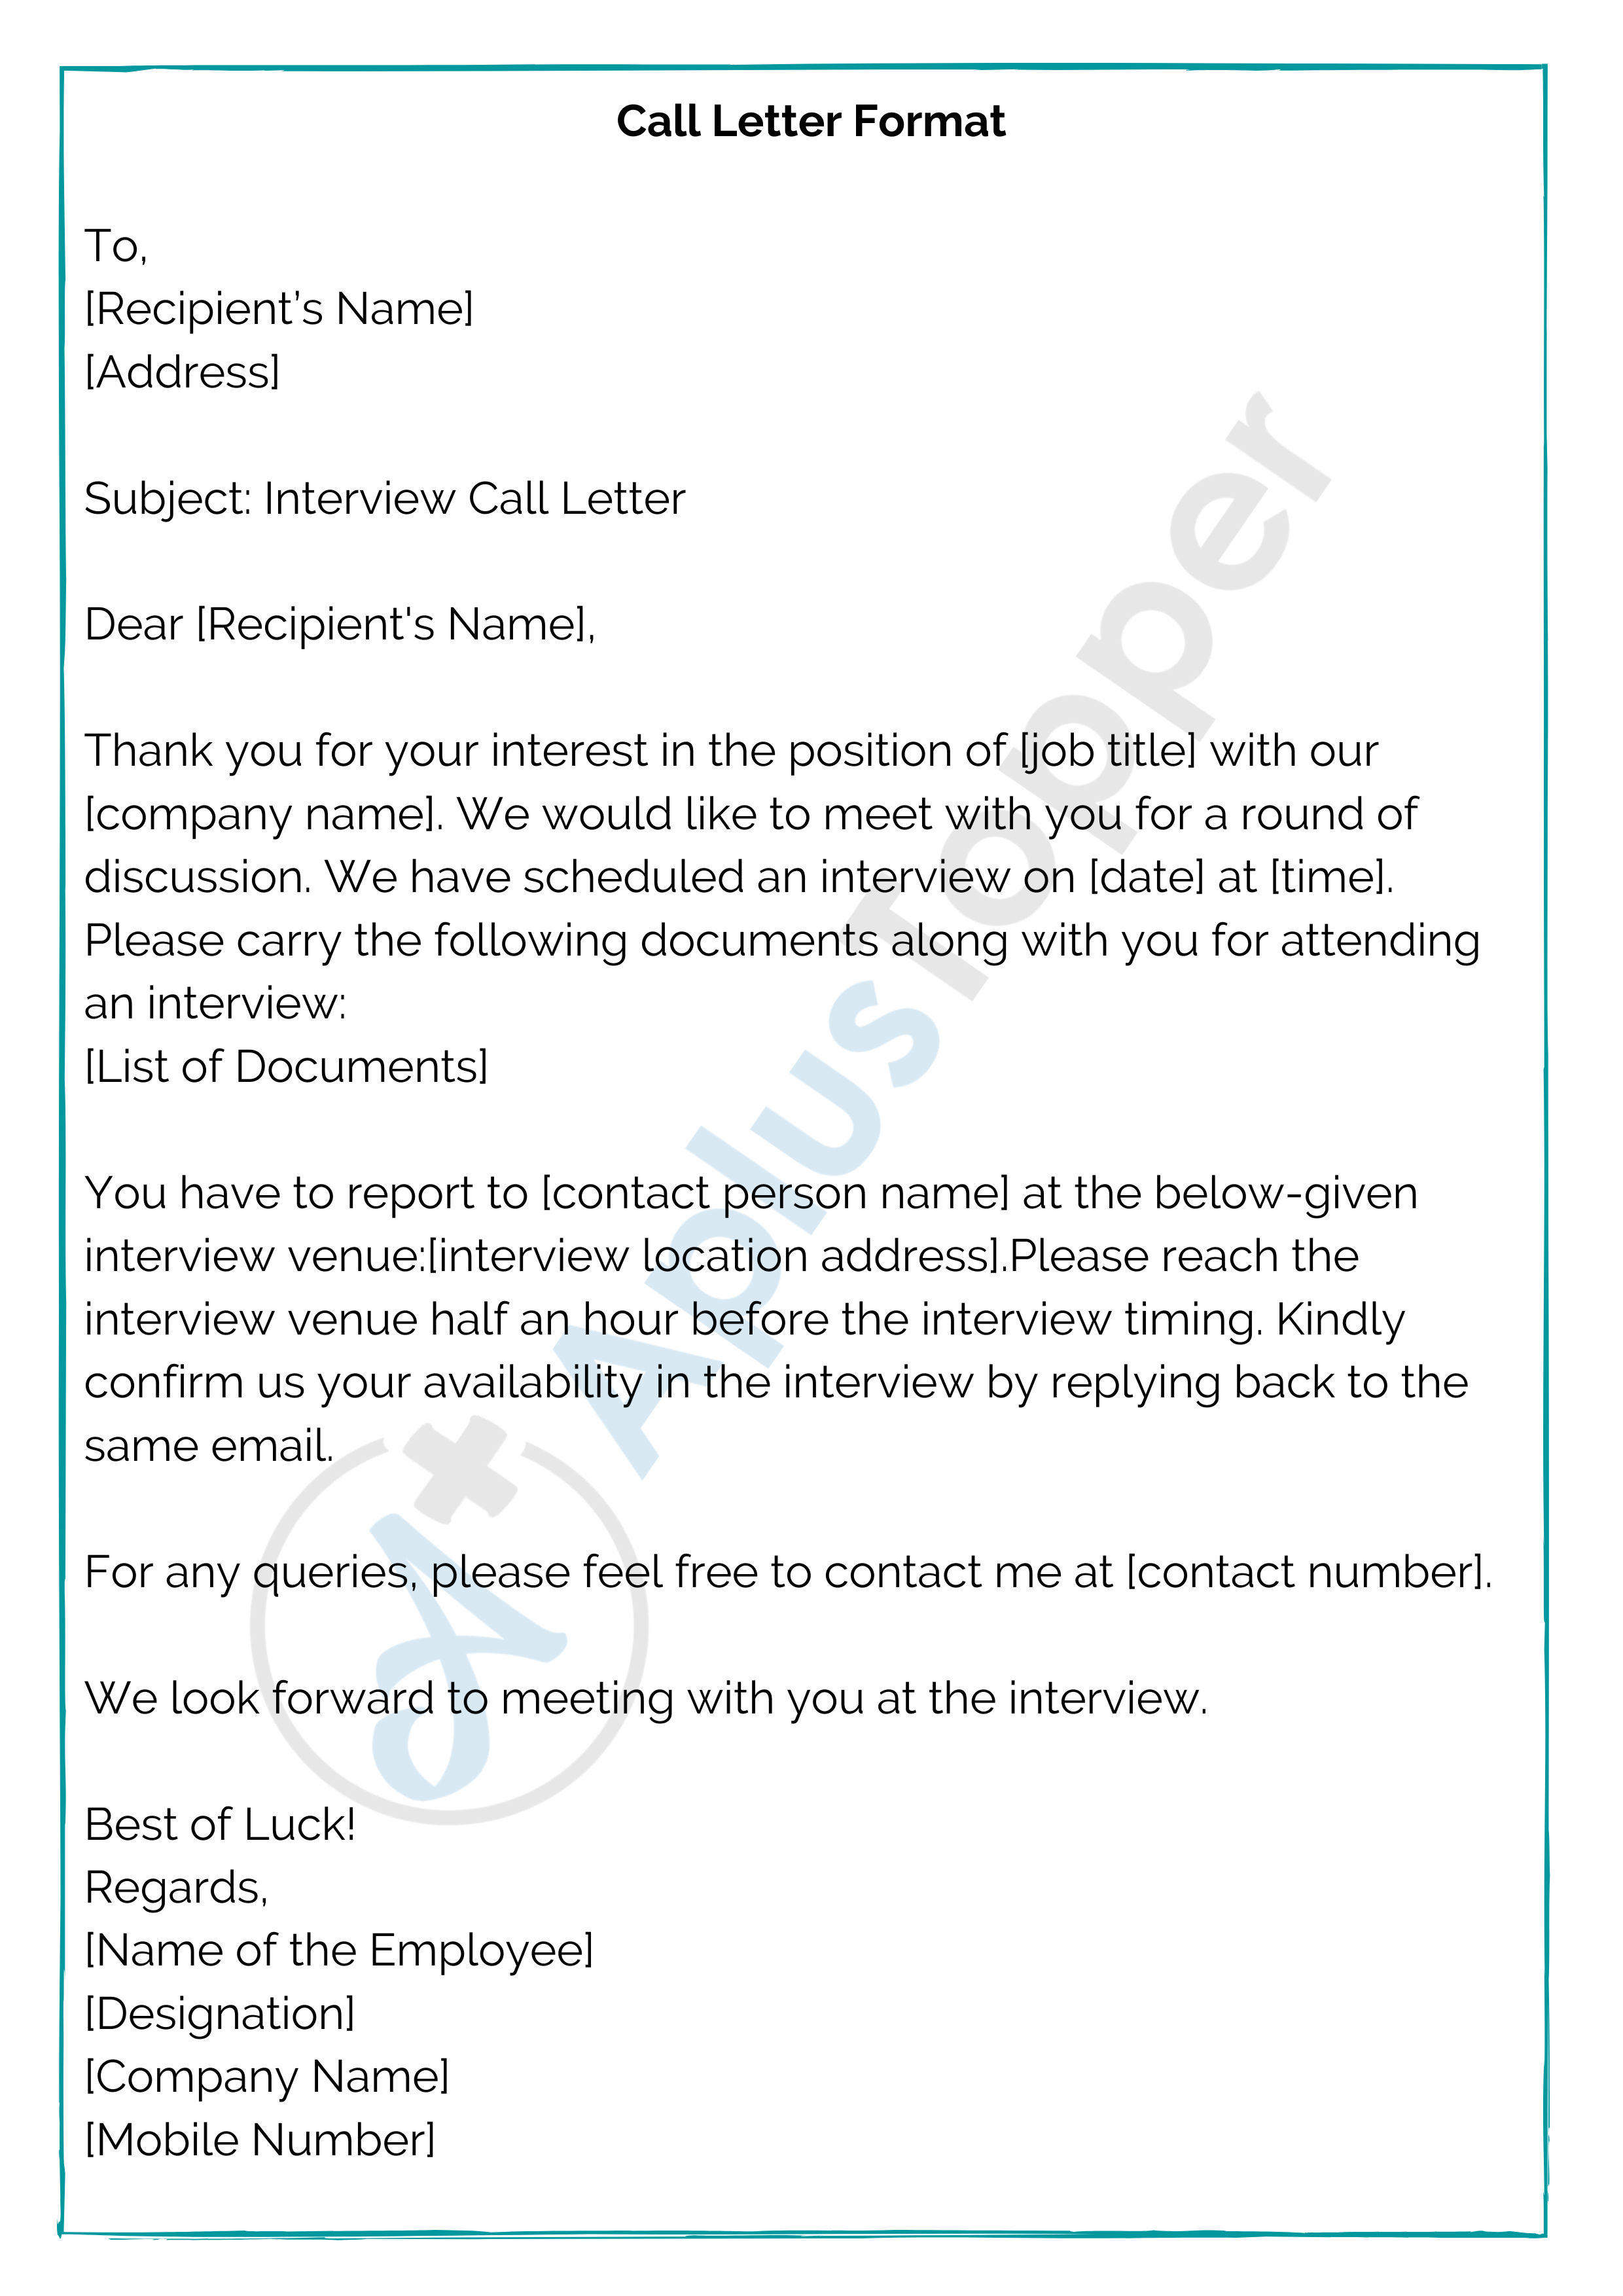 Call Letter Format